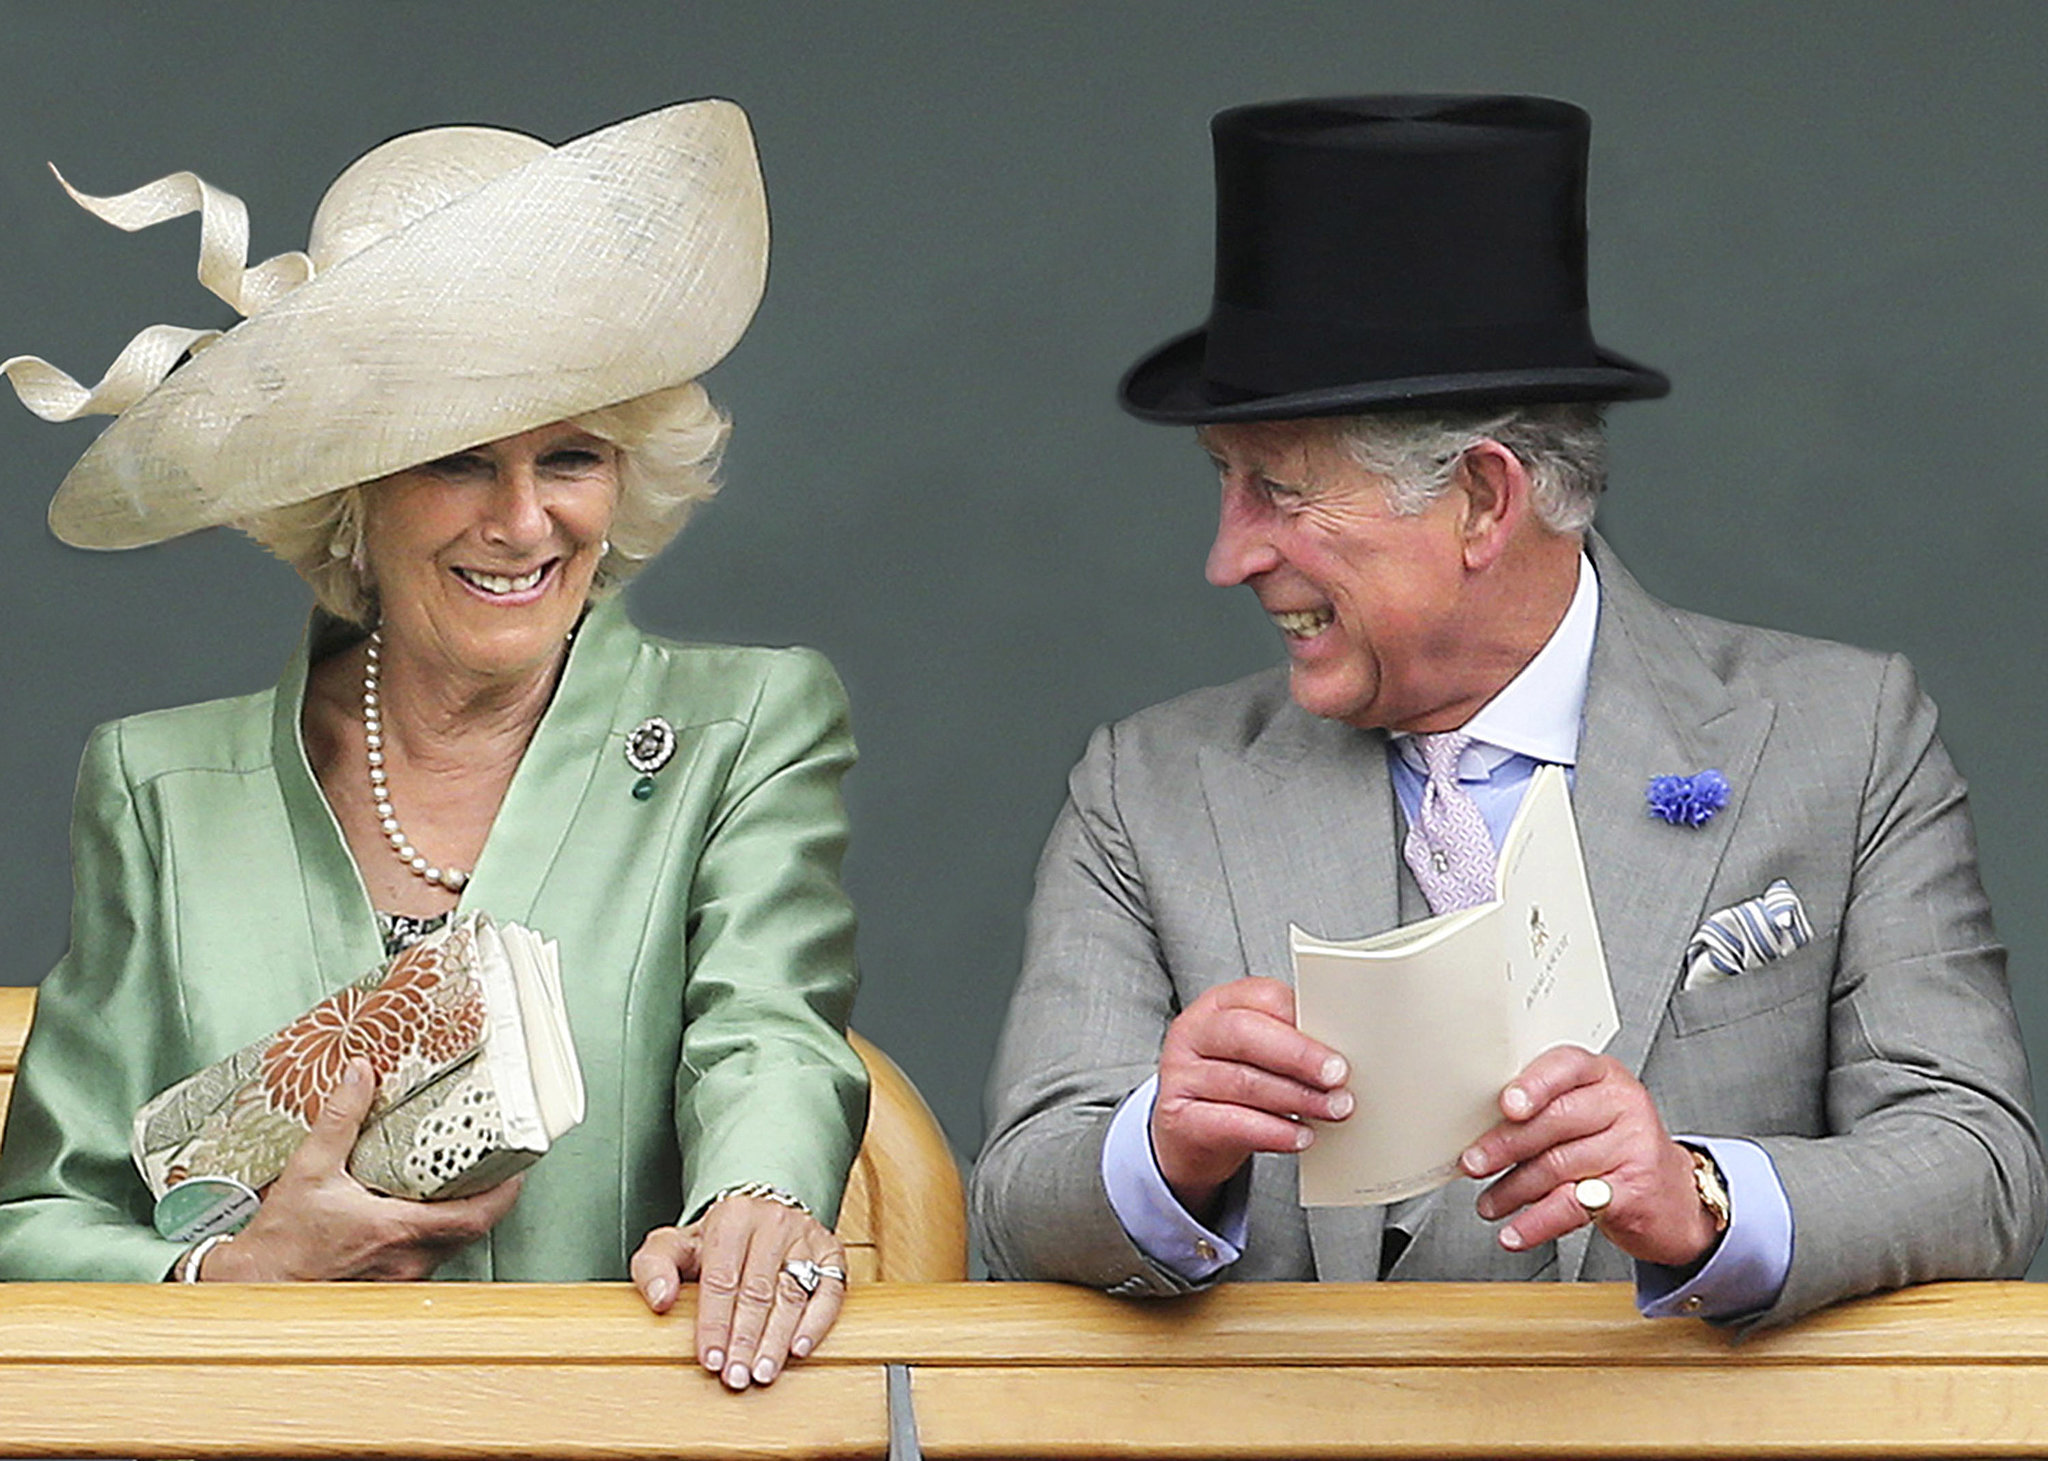 You call Camilla the Duchess of Cornwall, and not Camilla Parker-Bowles.